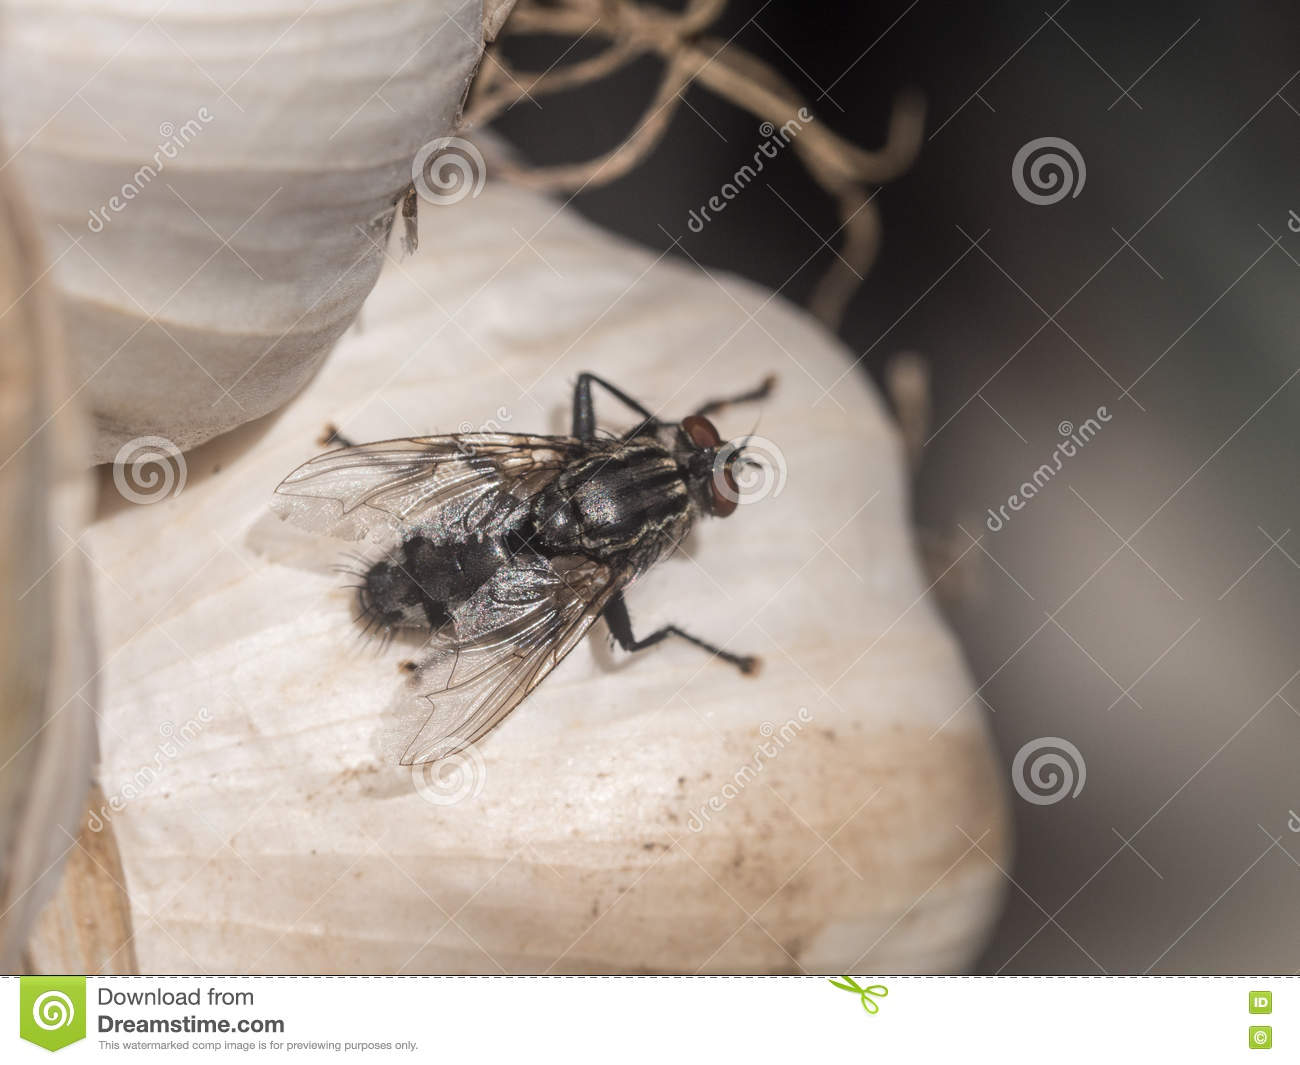 Fly on a garlic clove stock image  Image of color, flavour - 76712415